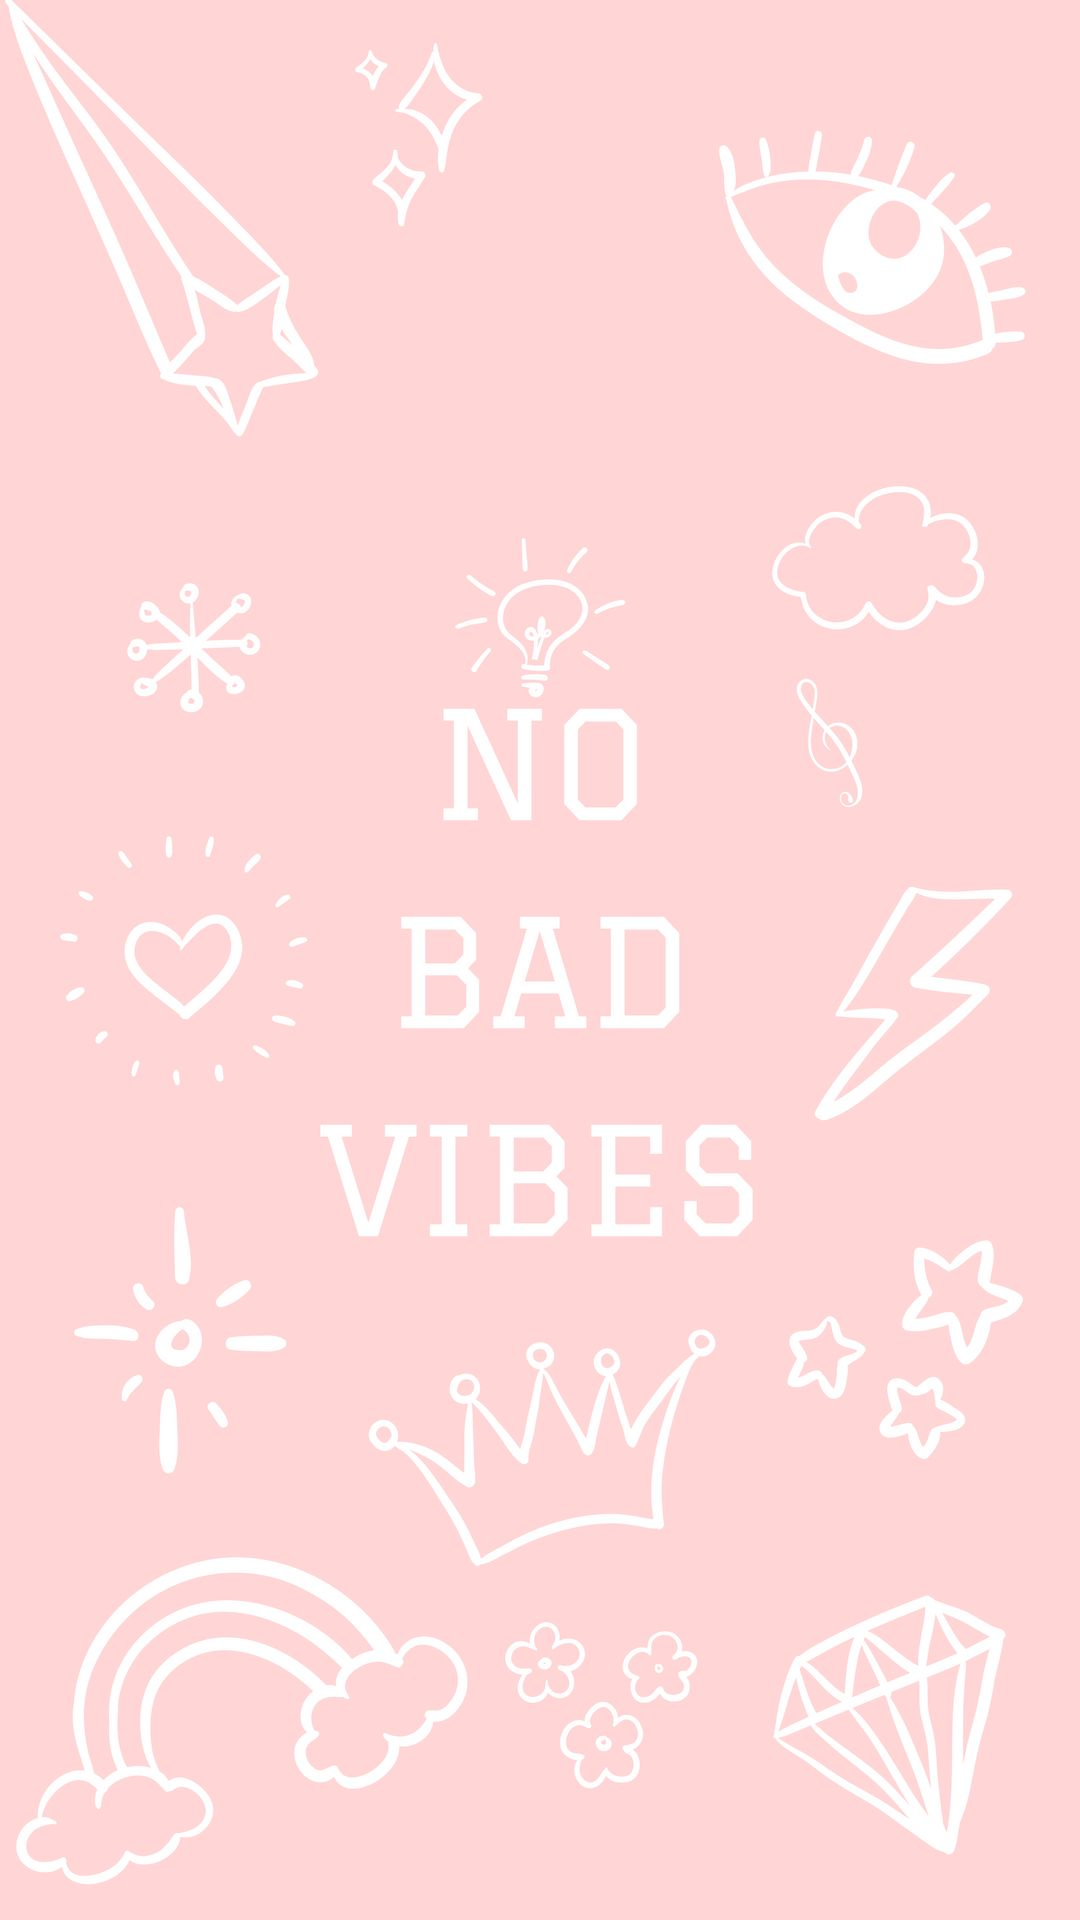 No Bad Vibes iPhone Wallpaper Iphone wallpaper, Vibes